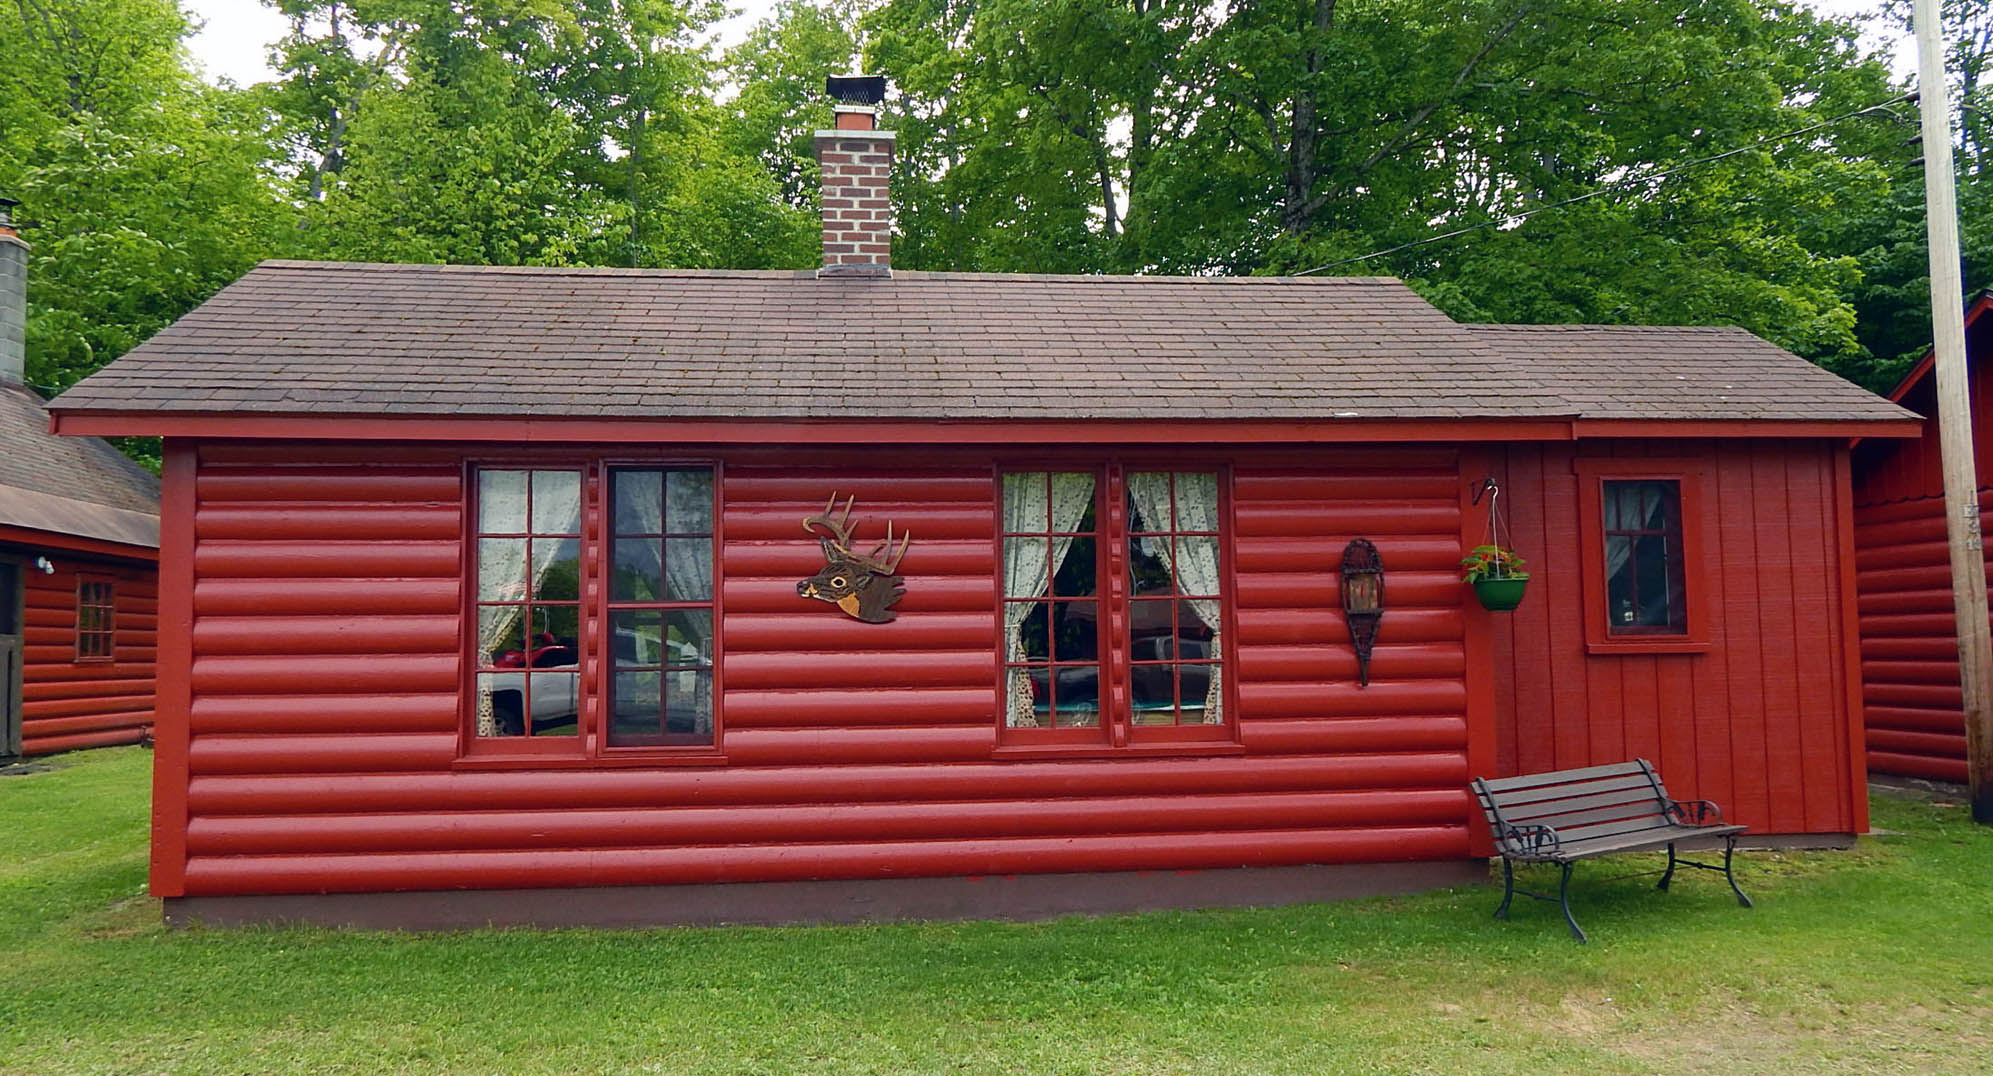 michigan cabins accommodations cabin york placid ny wilmington whiteface koa new tirtagucipool lake com rentals mtn x